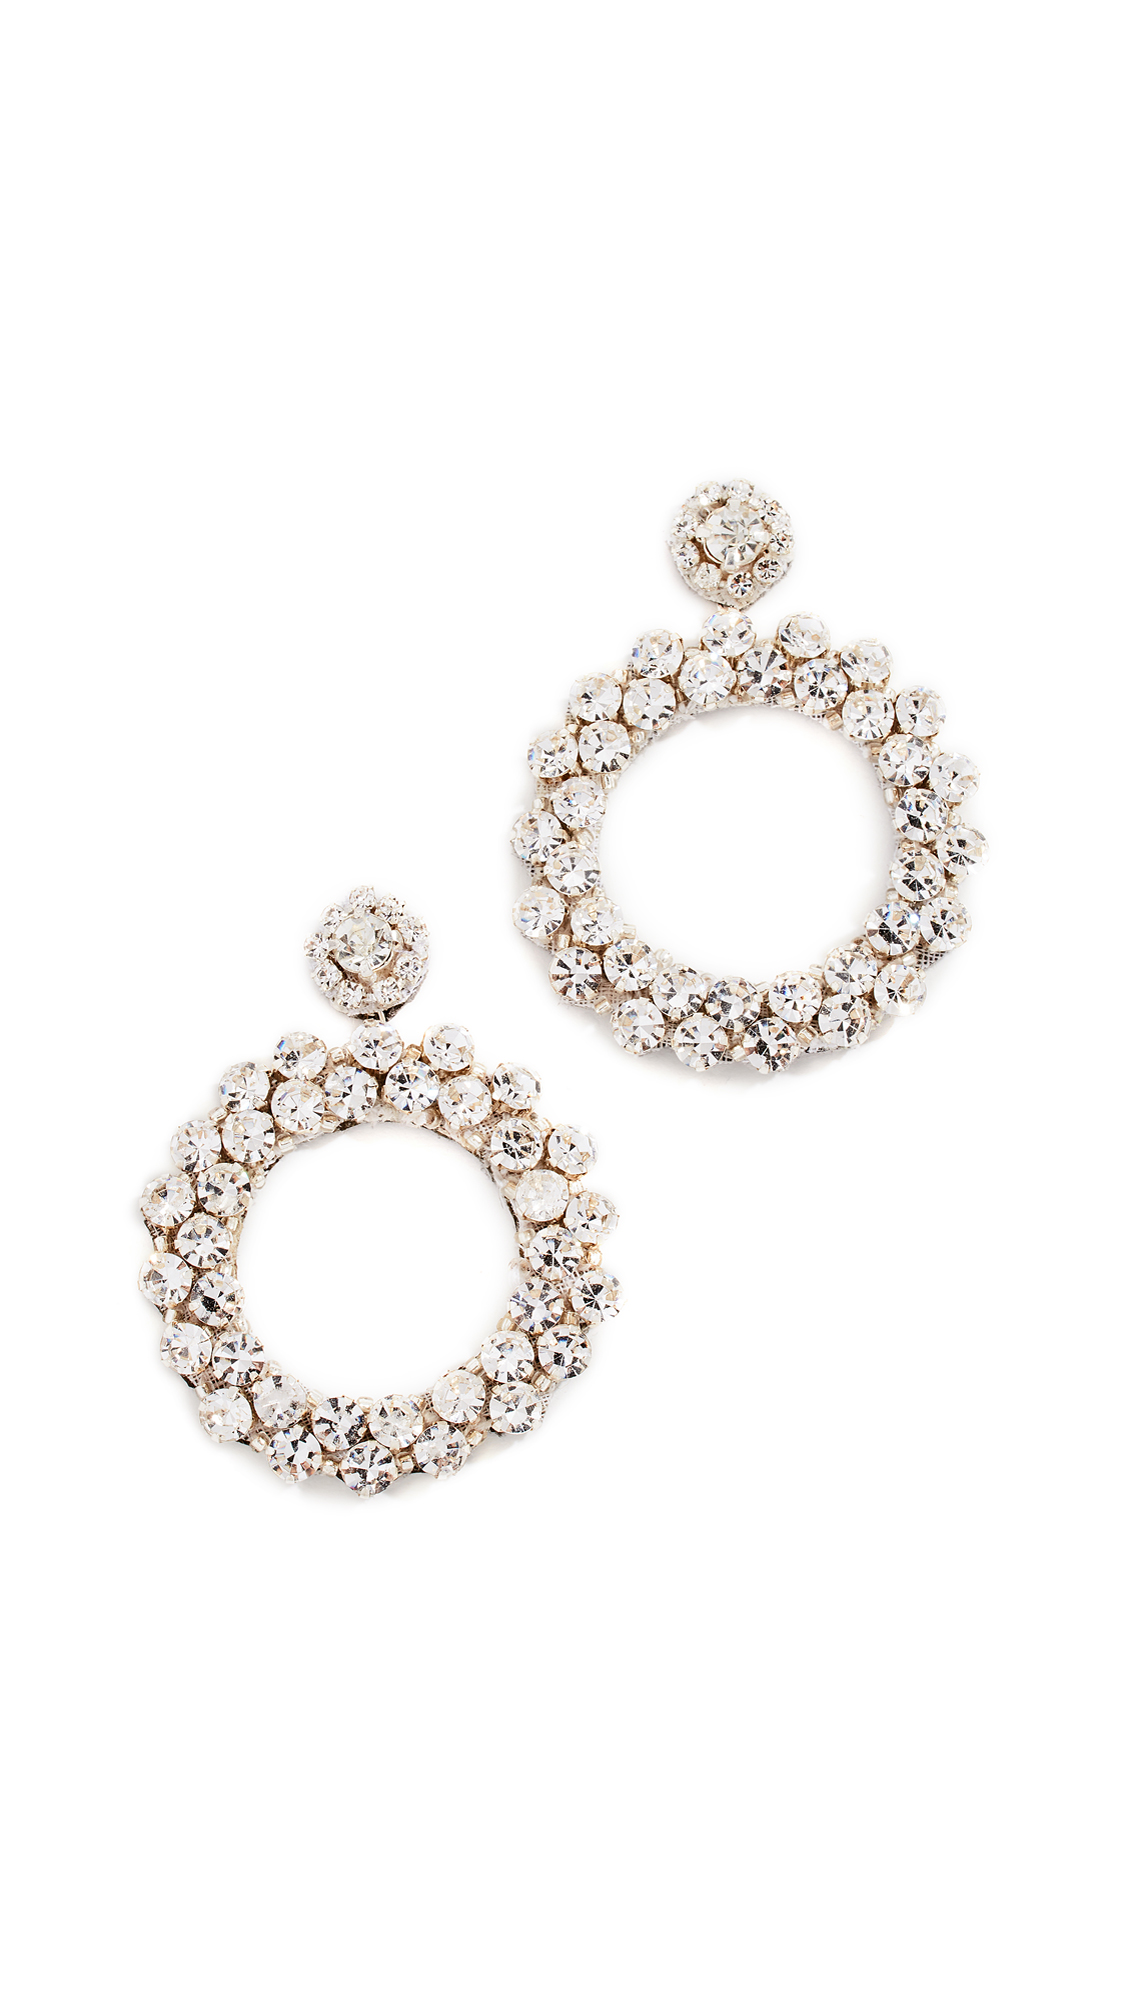 DEEPA GURNANI Amorax Earrings in Silver